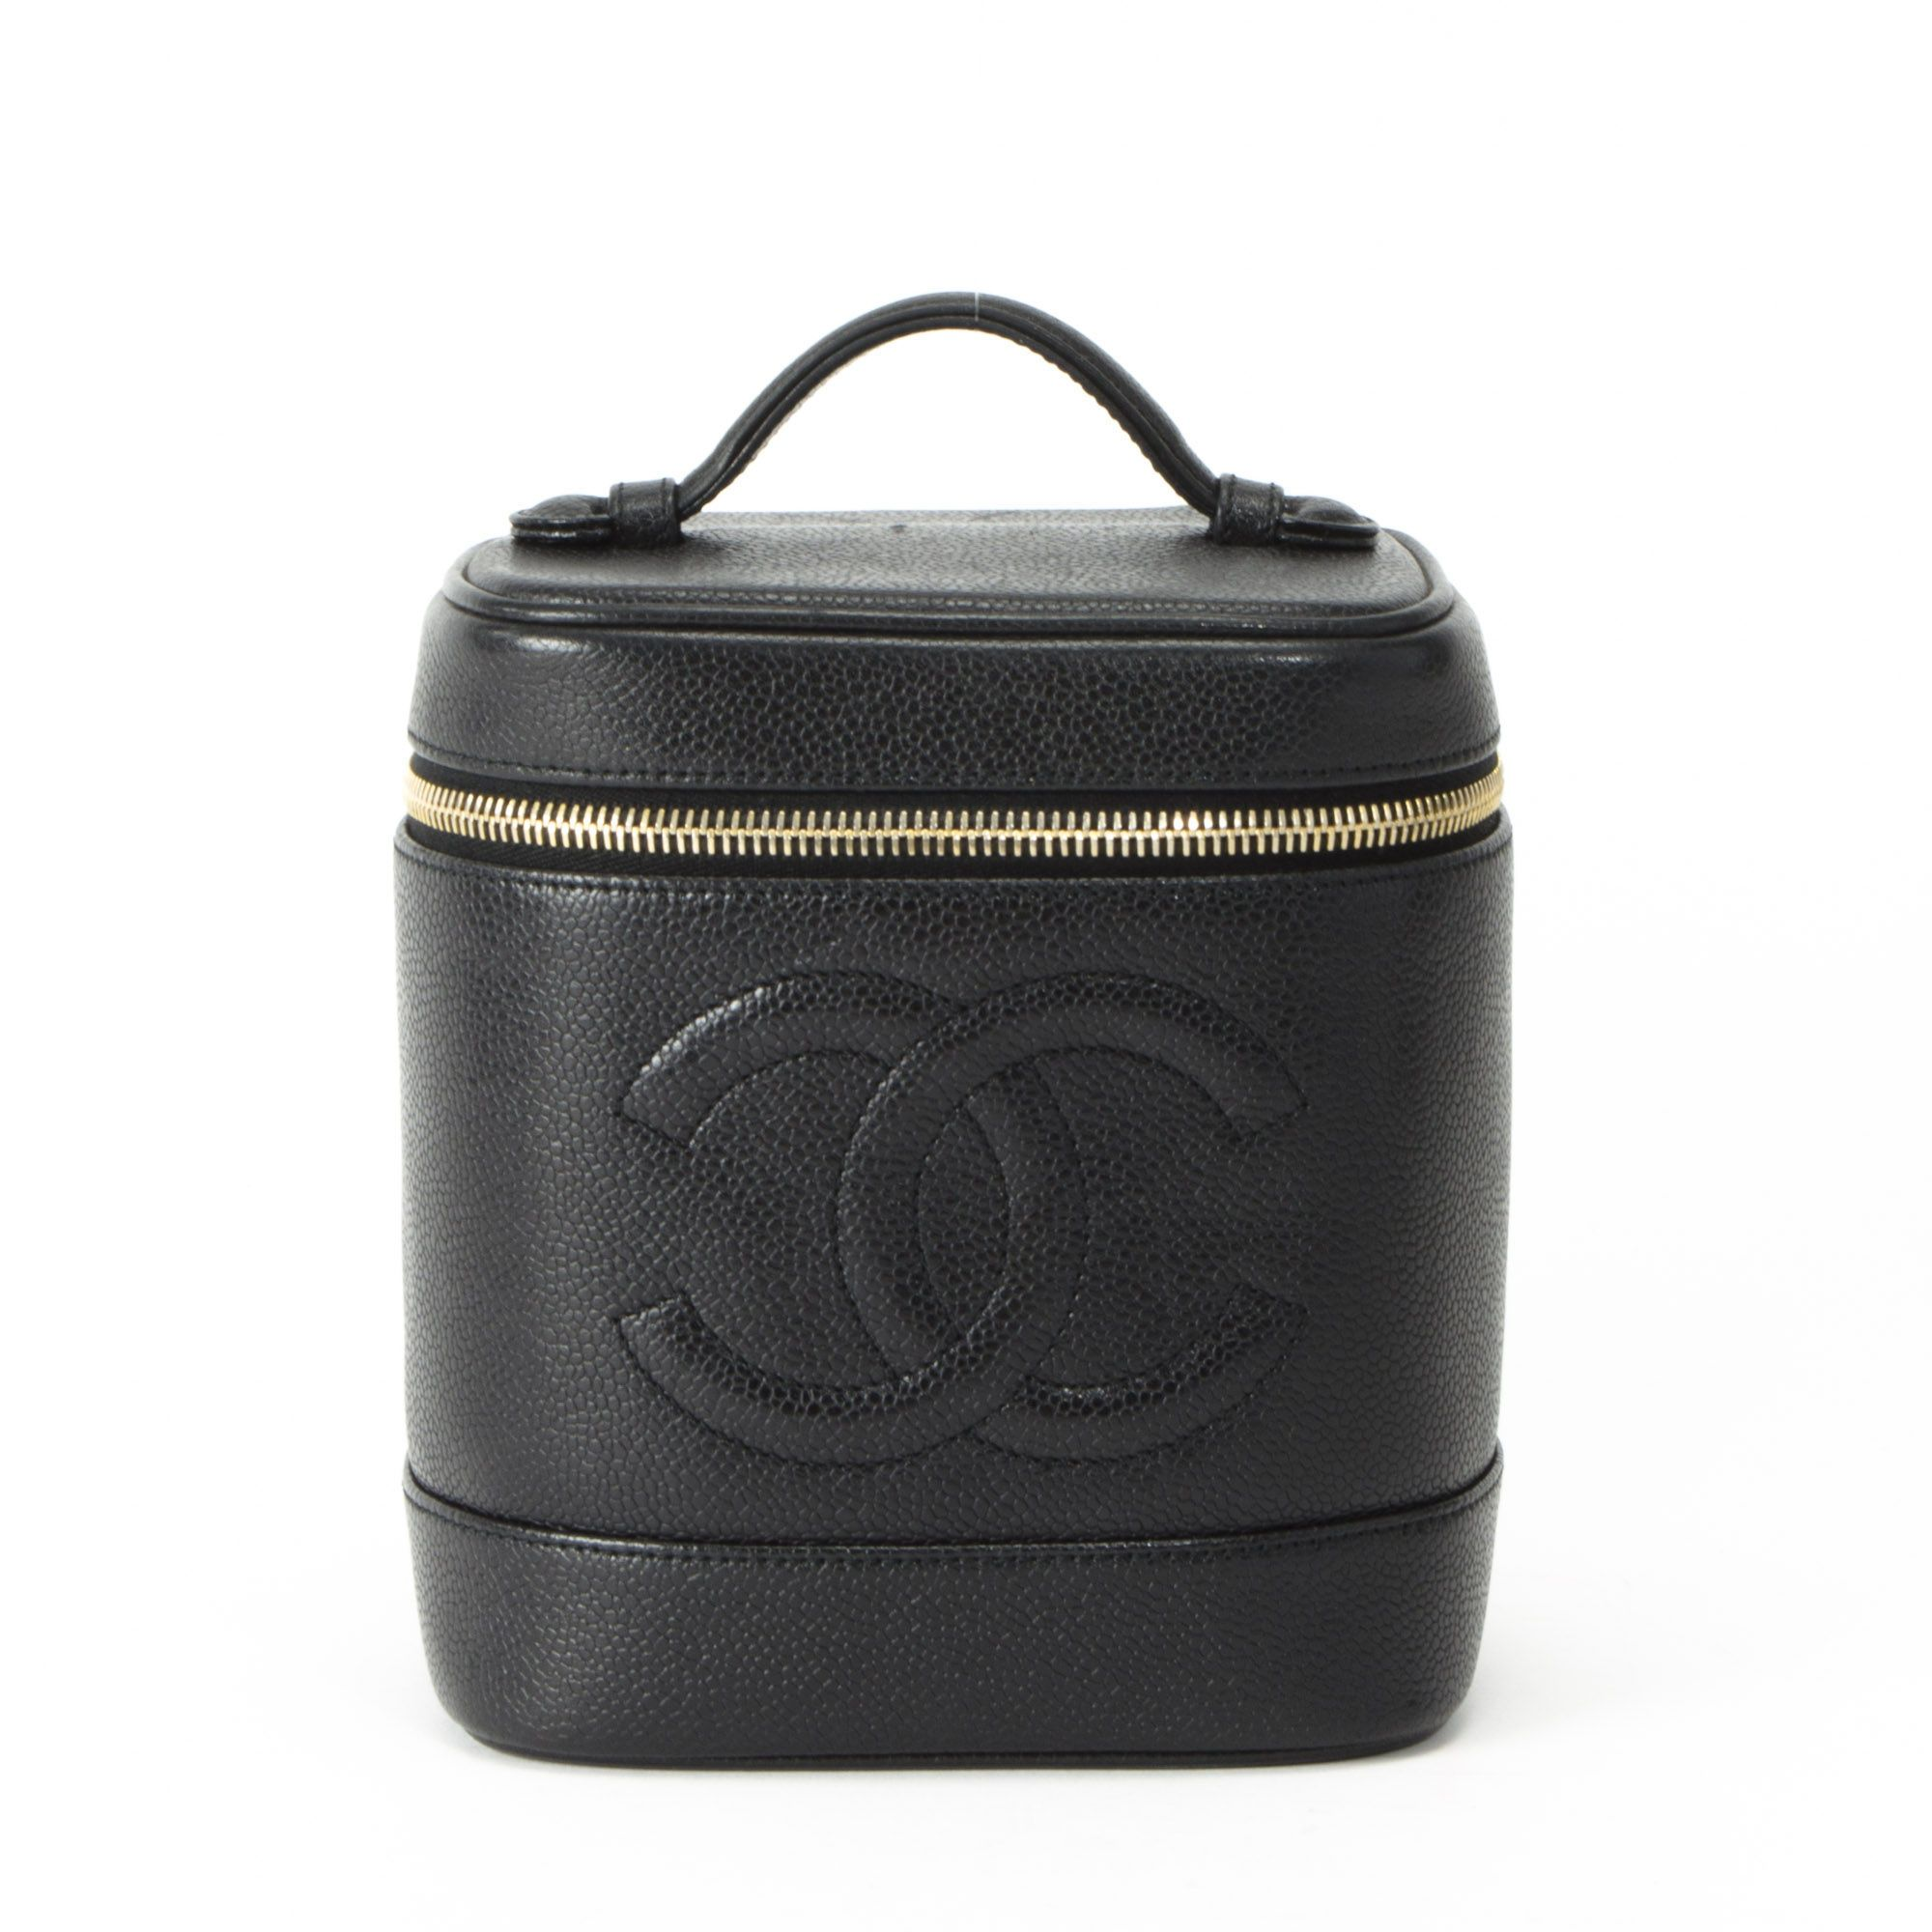 Chanel Makeup Bag I can imagine a makeup artist owning